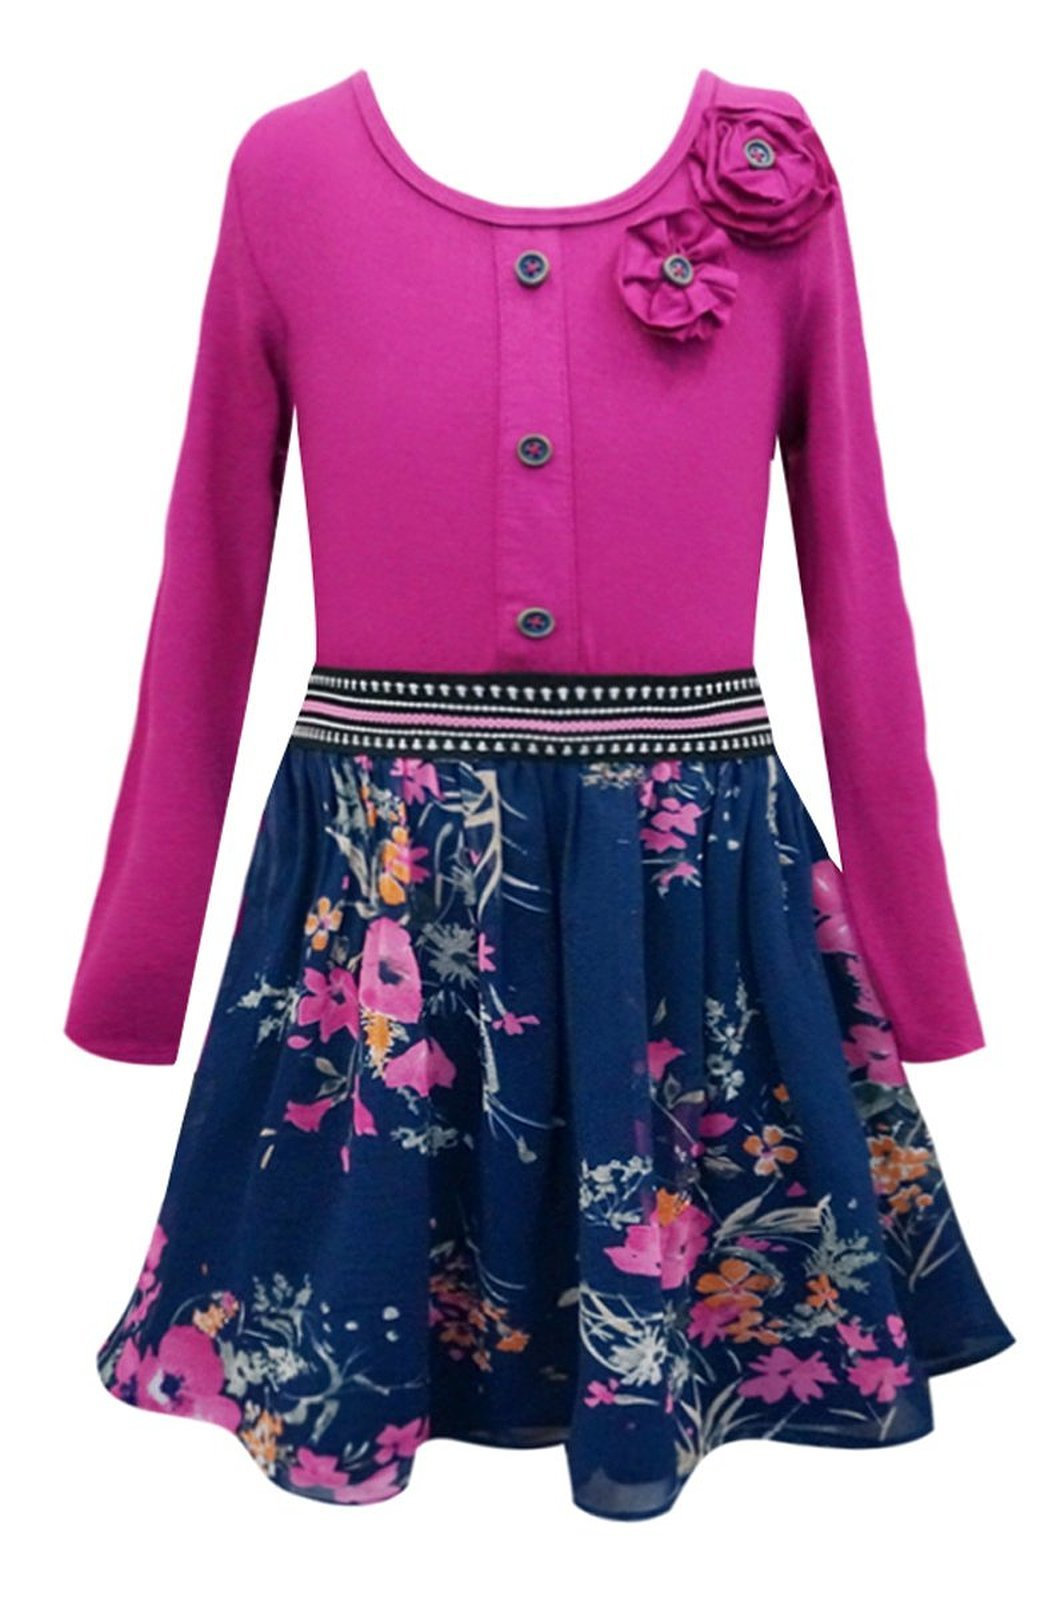 Primary image for Big Girls Tween 7-16 Navy-Blue Fuchsia Knit to Floral Chiffon Long Sleeve Dress